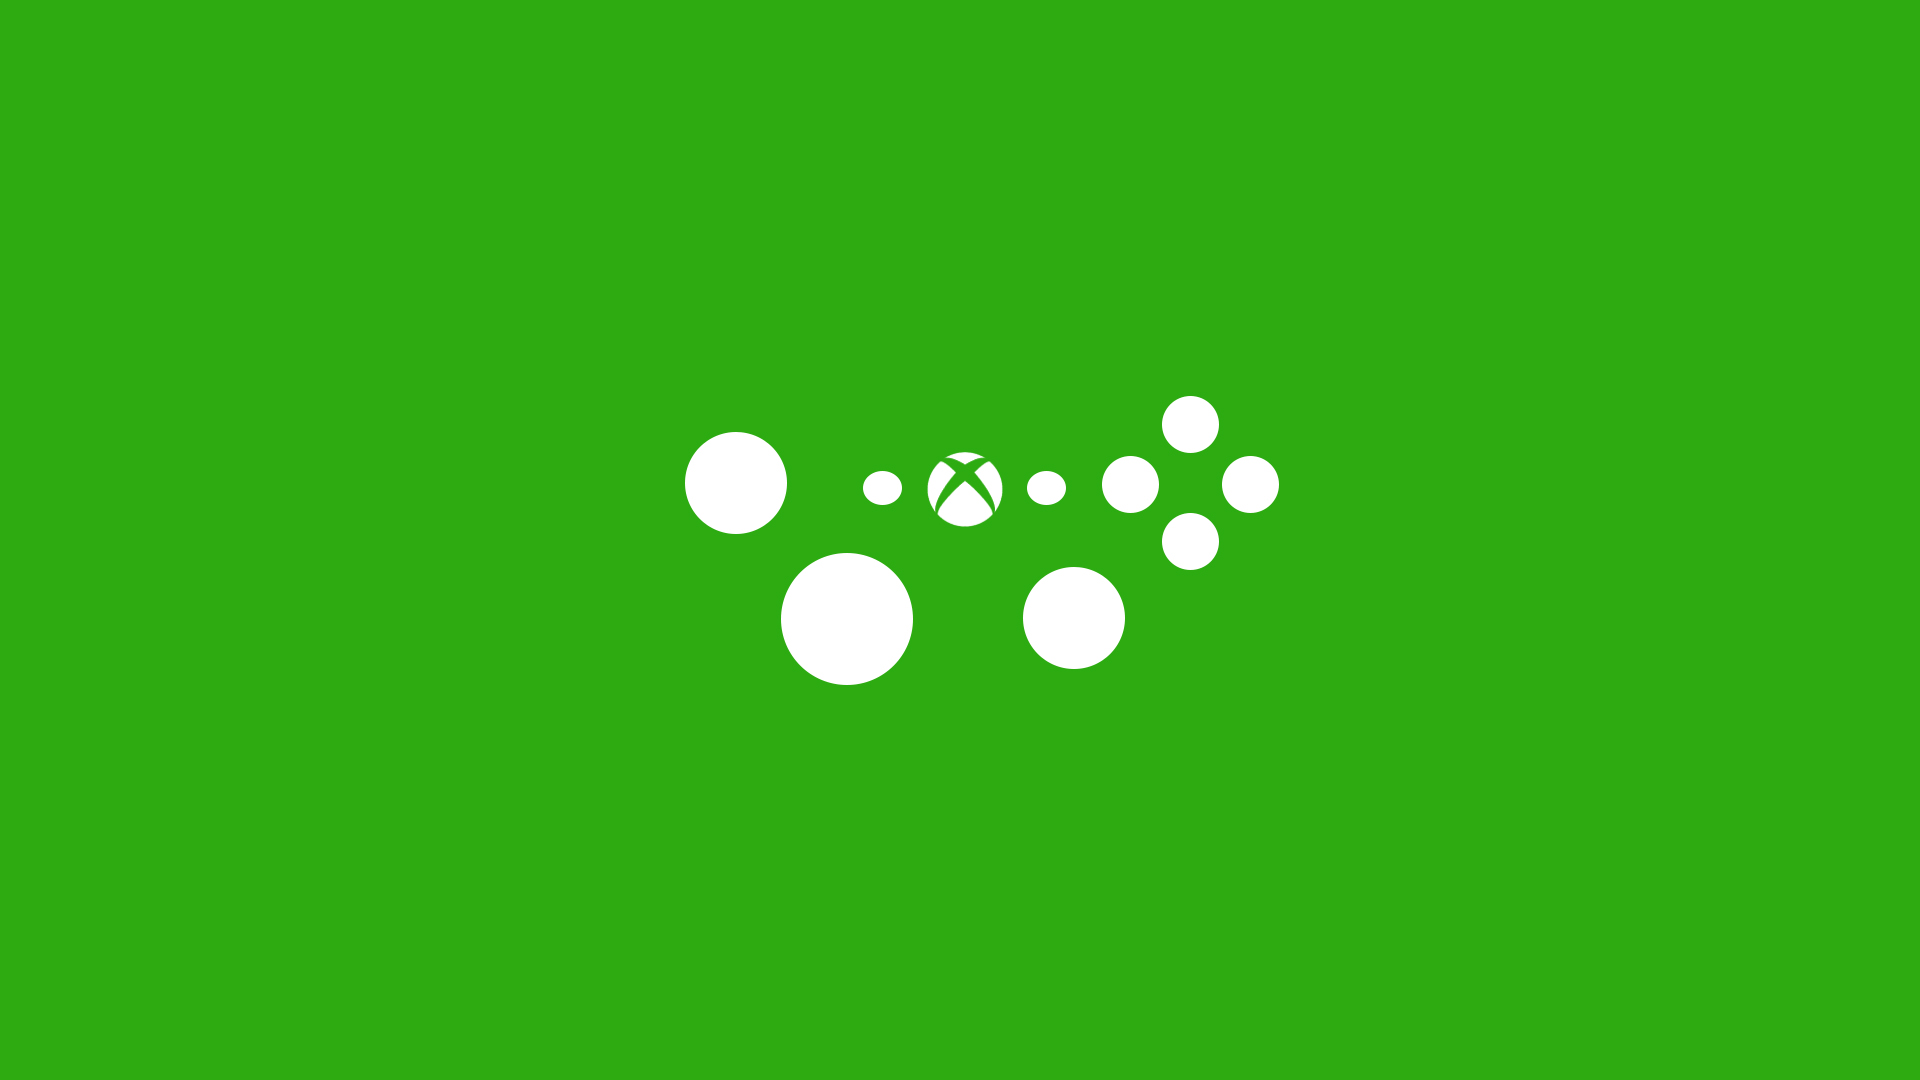 Xbox Controller Iphone Plus Wallpaper 1920x1080